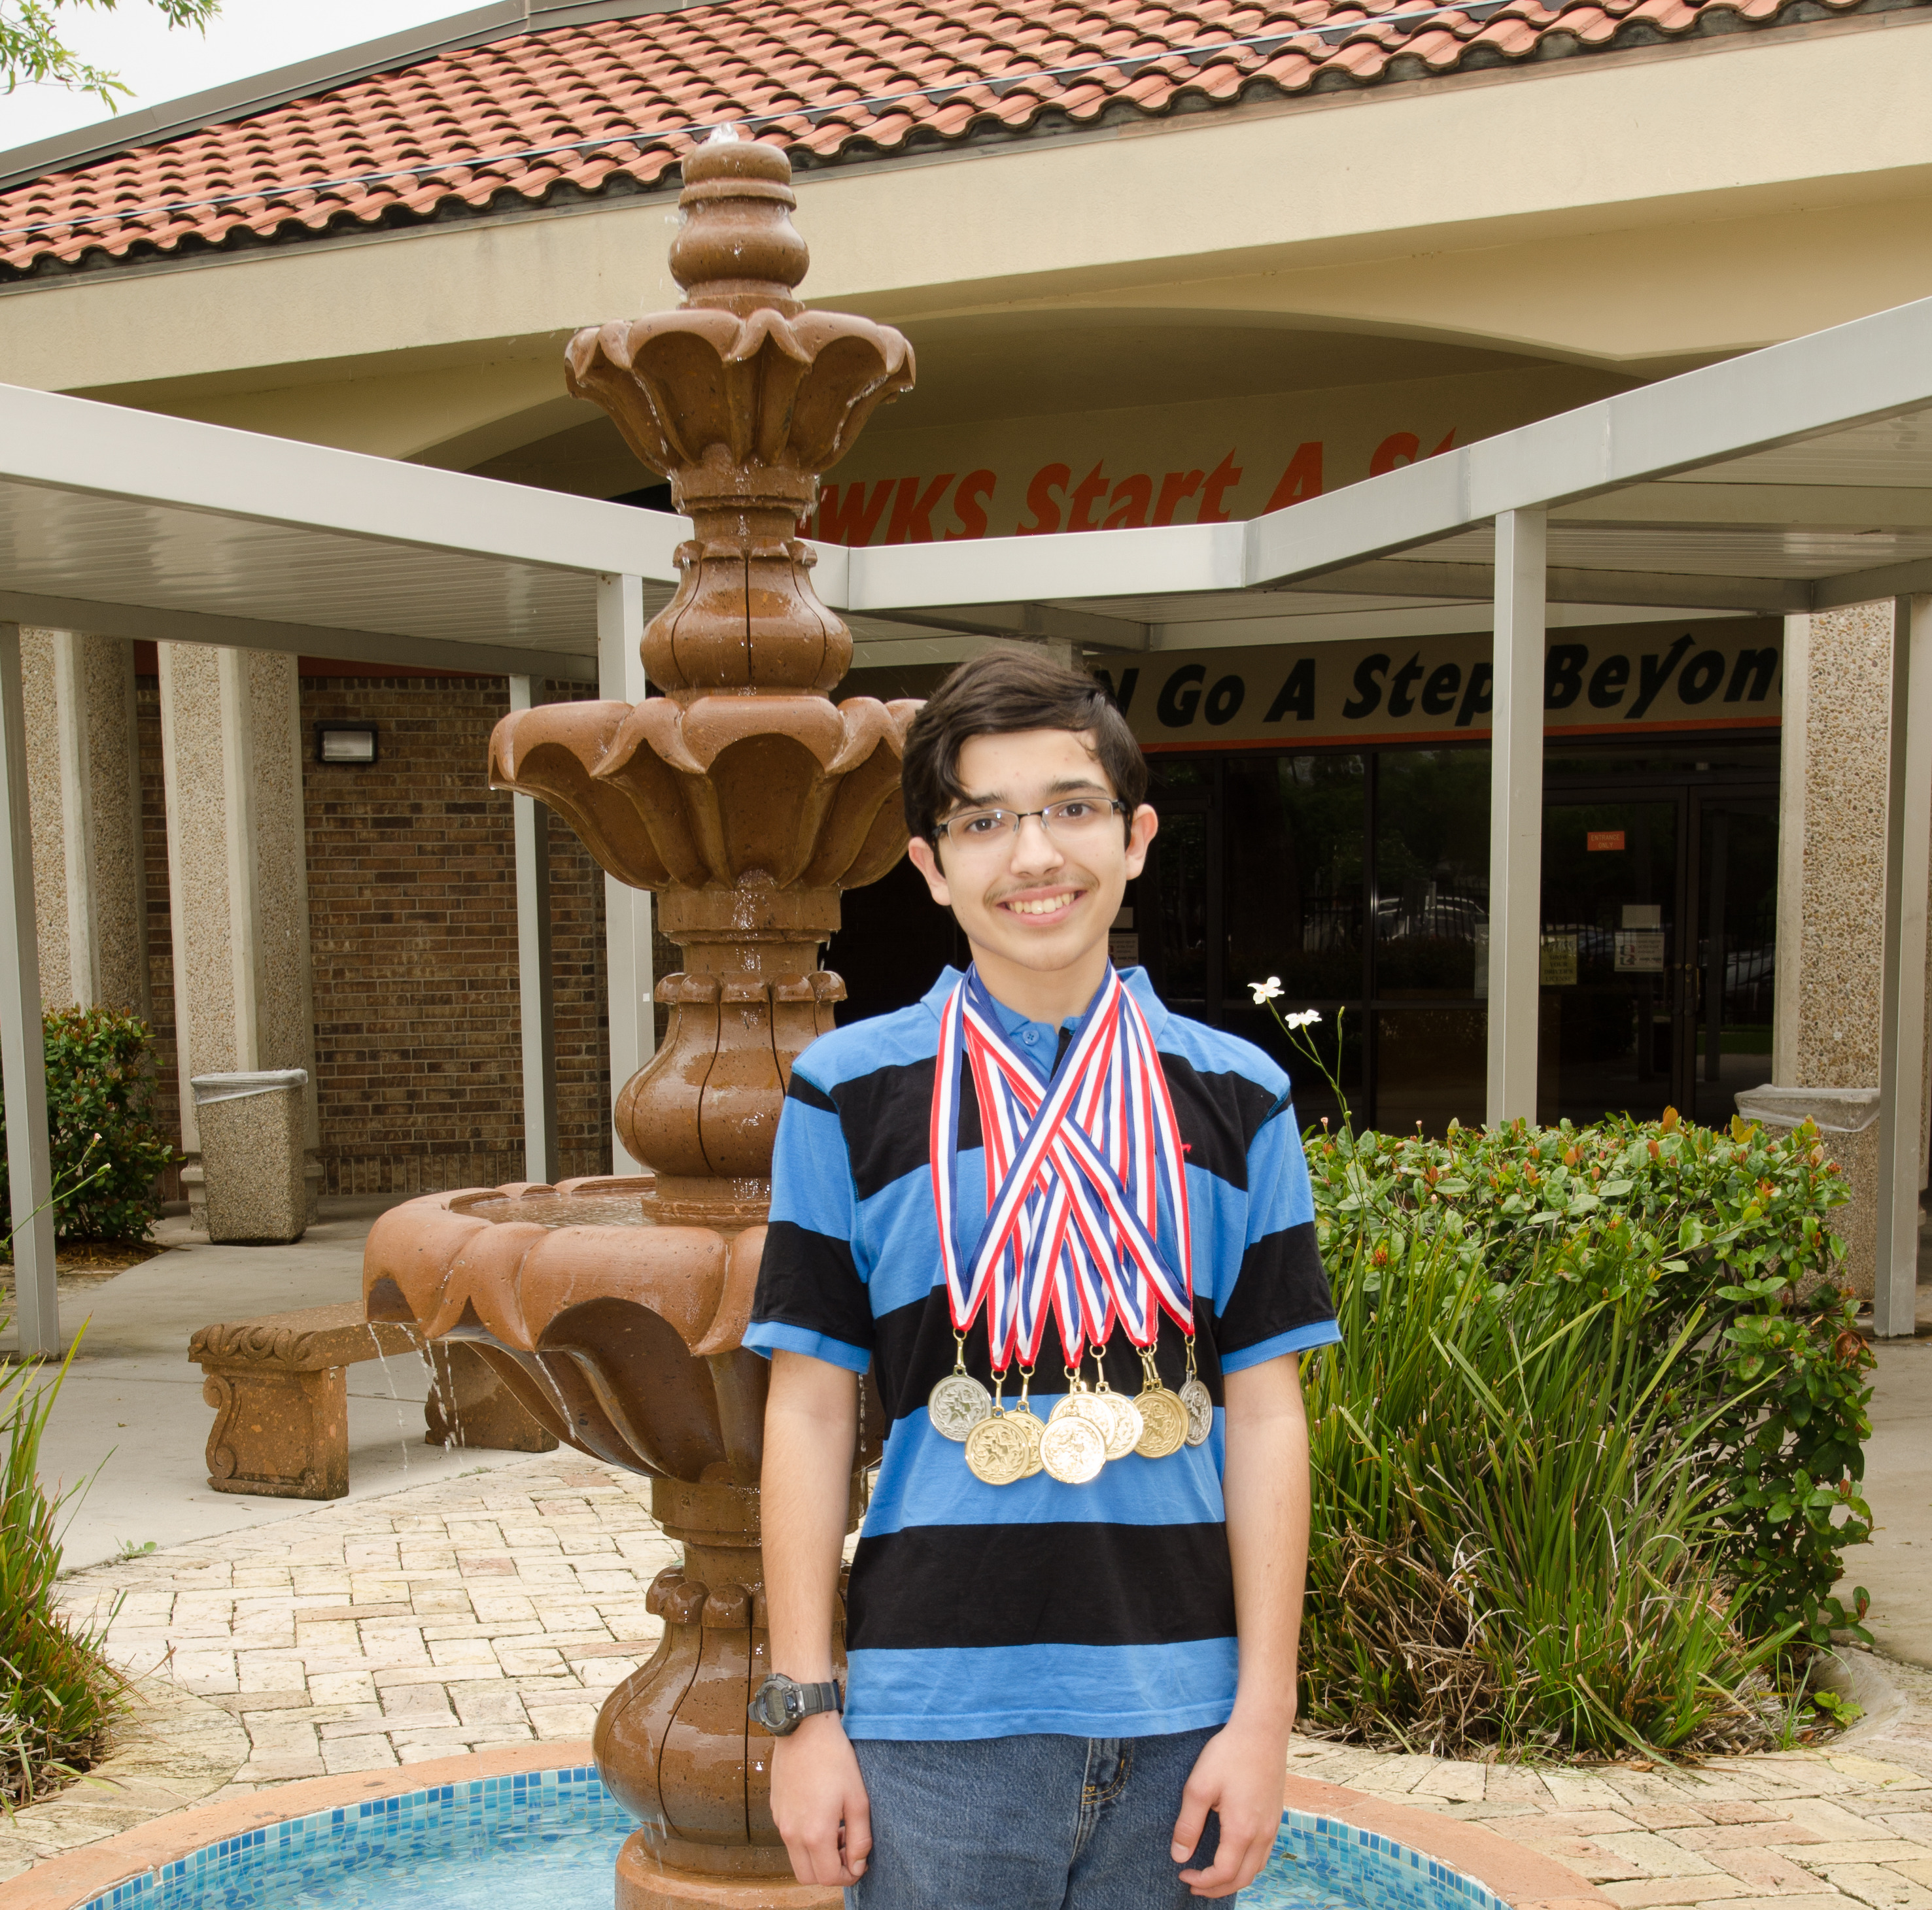 Record year: Math whiz takes over the competition